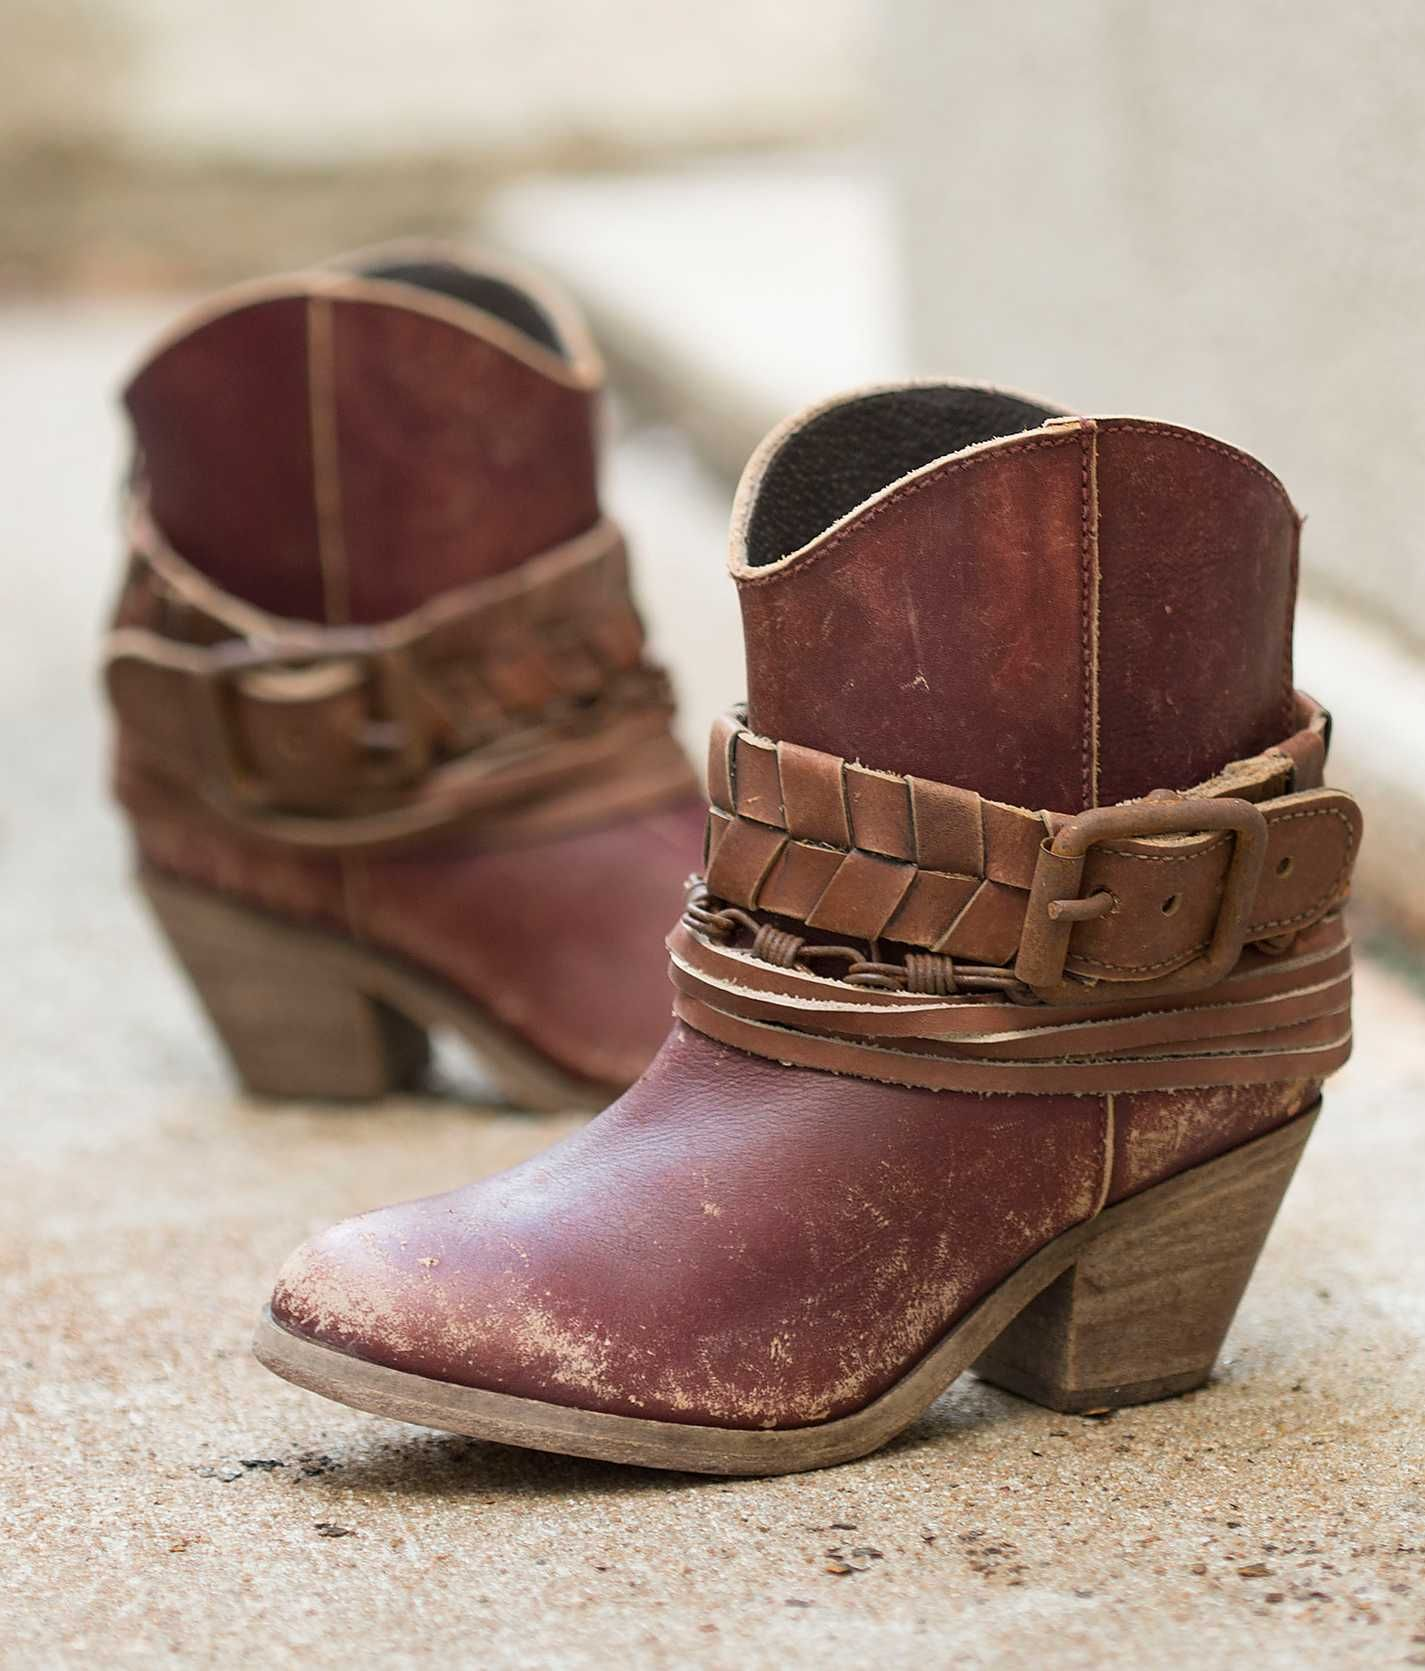 Indie Spirit by Corral Rosebud Cowboy Boot Damens's Schuhes Schuhes Schuhes   Buckle f7ec0a